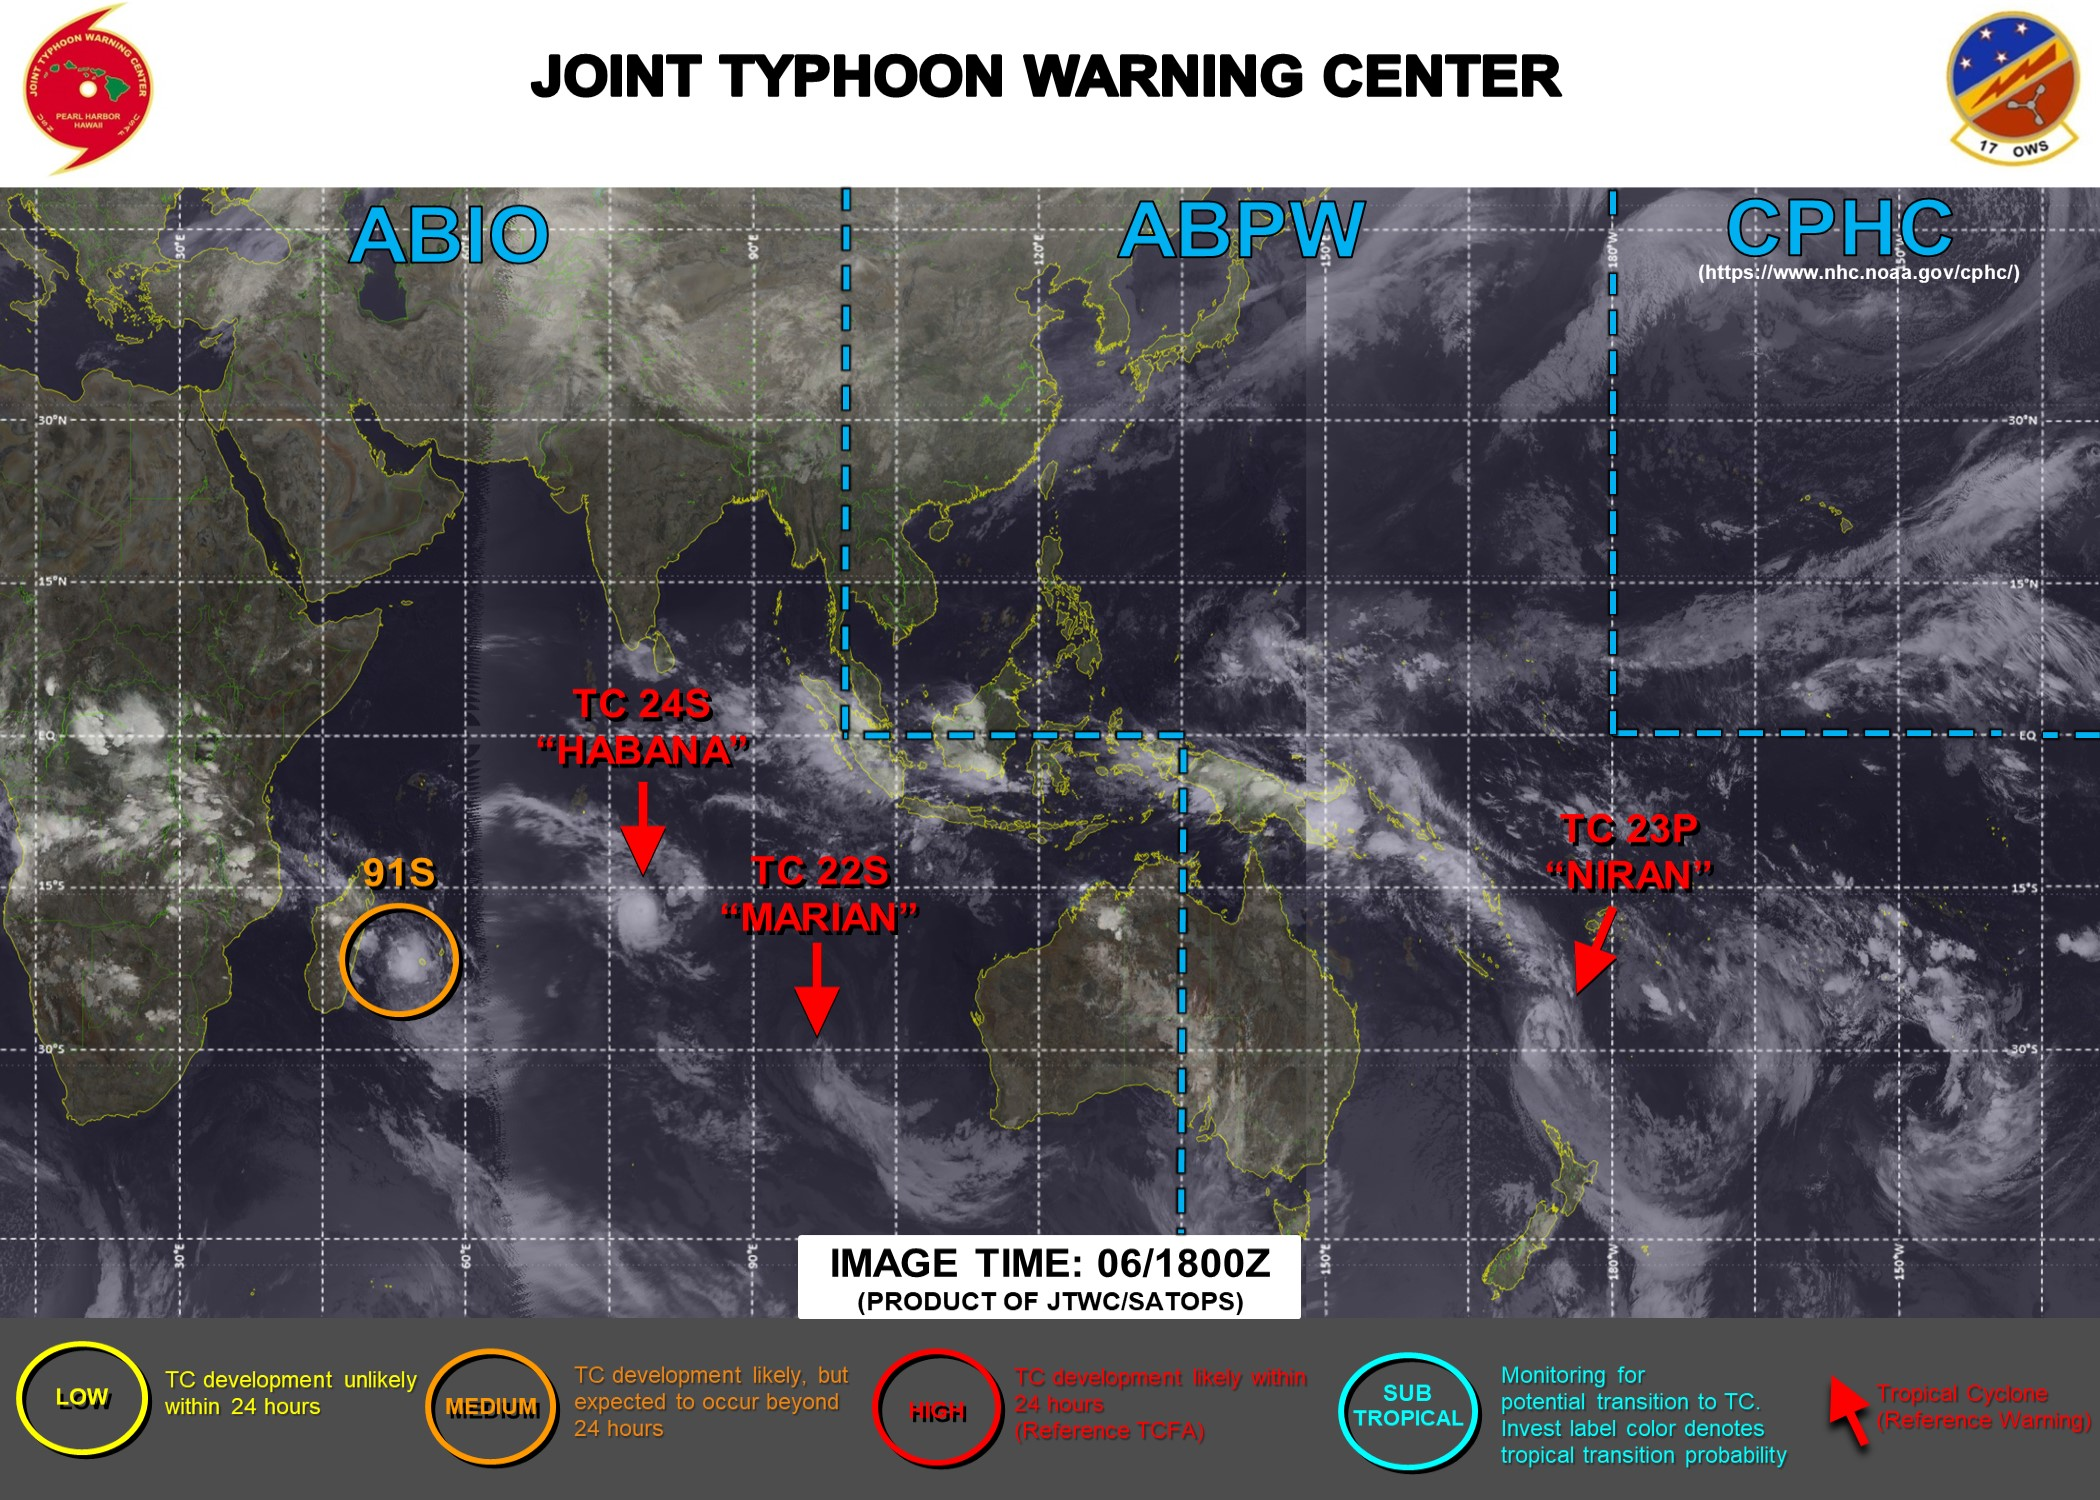 06/18UTC. JTWC HAS BEEN ISSUING 6HOURLY WARNINGS ON 23P(NIRAN) AND 12HOURLY WARNINGS ON 24S(HABANA). WARNING 17/FINAL WAS ISSUED AT 06/09UTC FOR 22S(MARIAN). INVEST 91S IS NOW ASSESSED AS HAVING MEDIUM CHANCES OF REACHING 35KNOTS WITHIN 24HOURS. 3 HOURLY SATELLITE BULLETINS ARE ISSUED FOR THE 4 SYSTEMS.